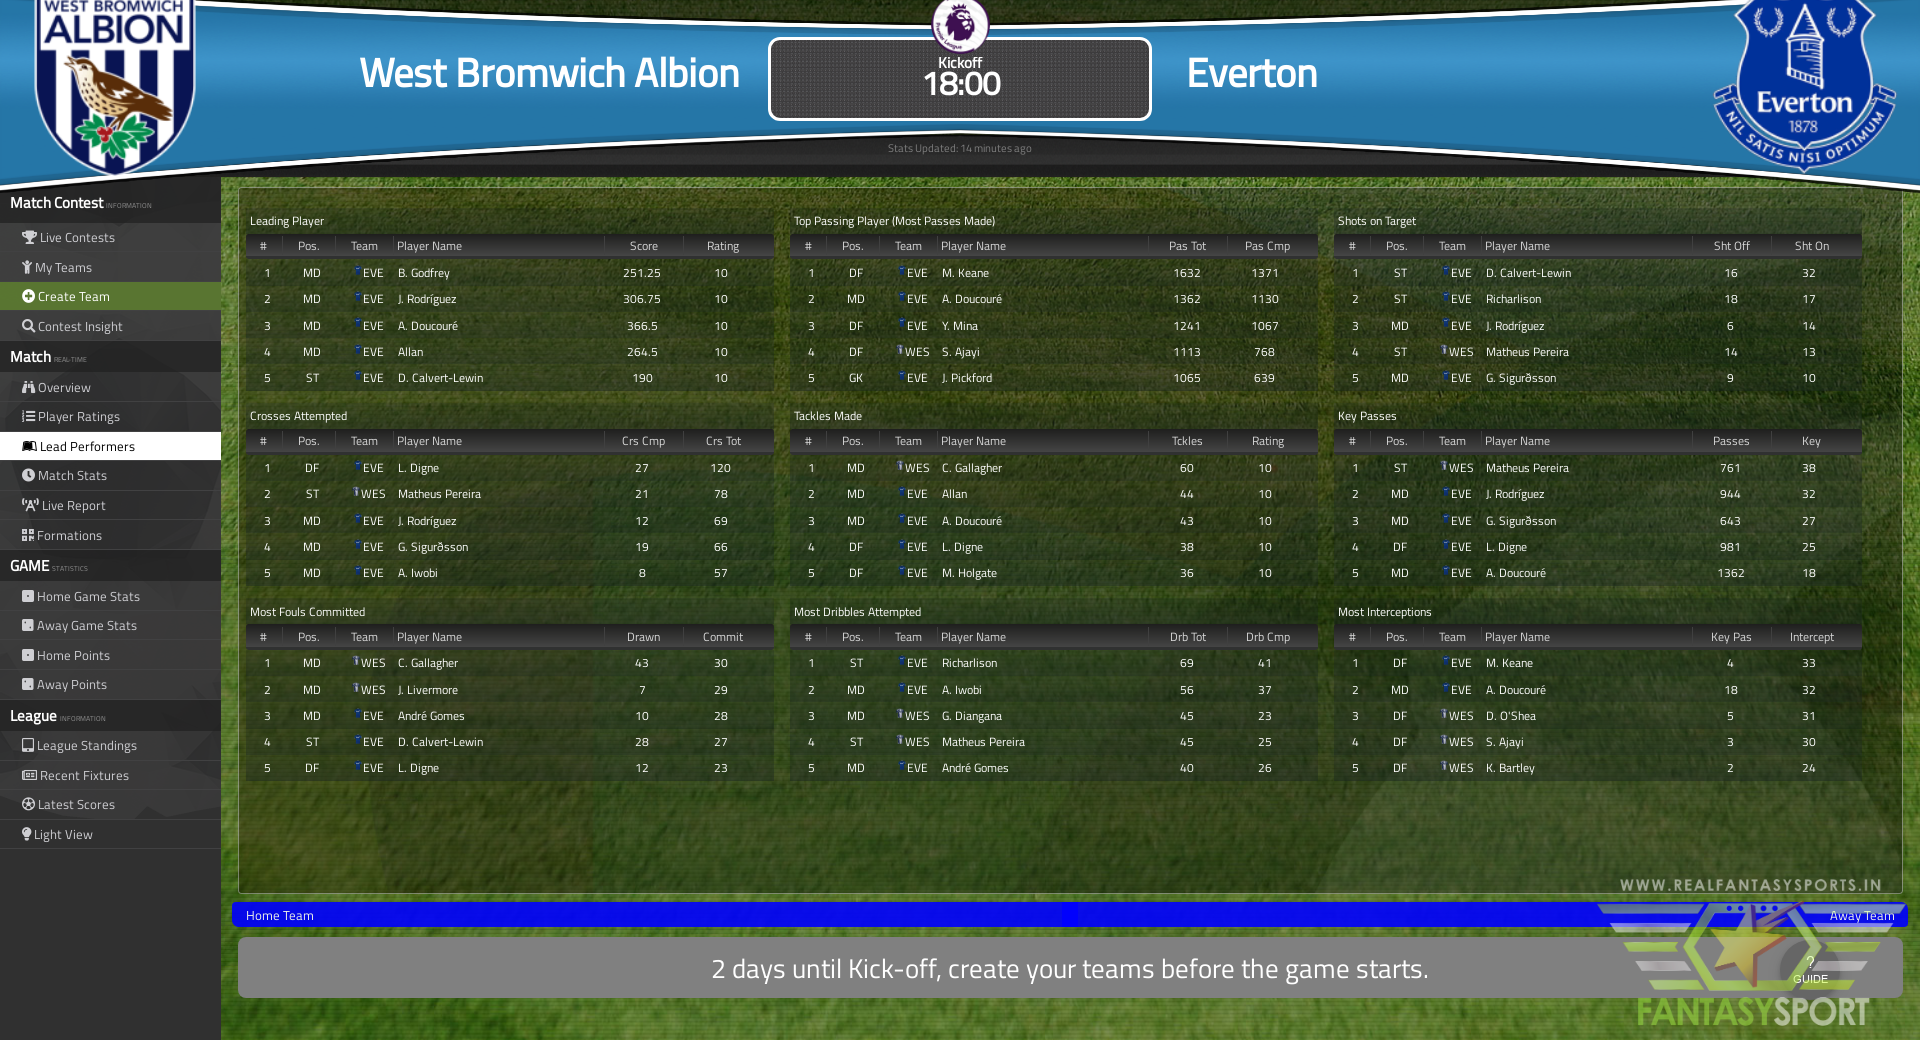 West Bromwich Albion vs Everton dream11 prediction (4th March 2021)